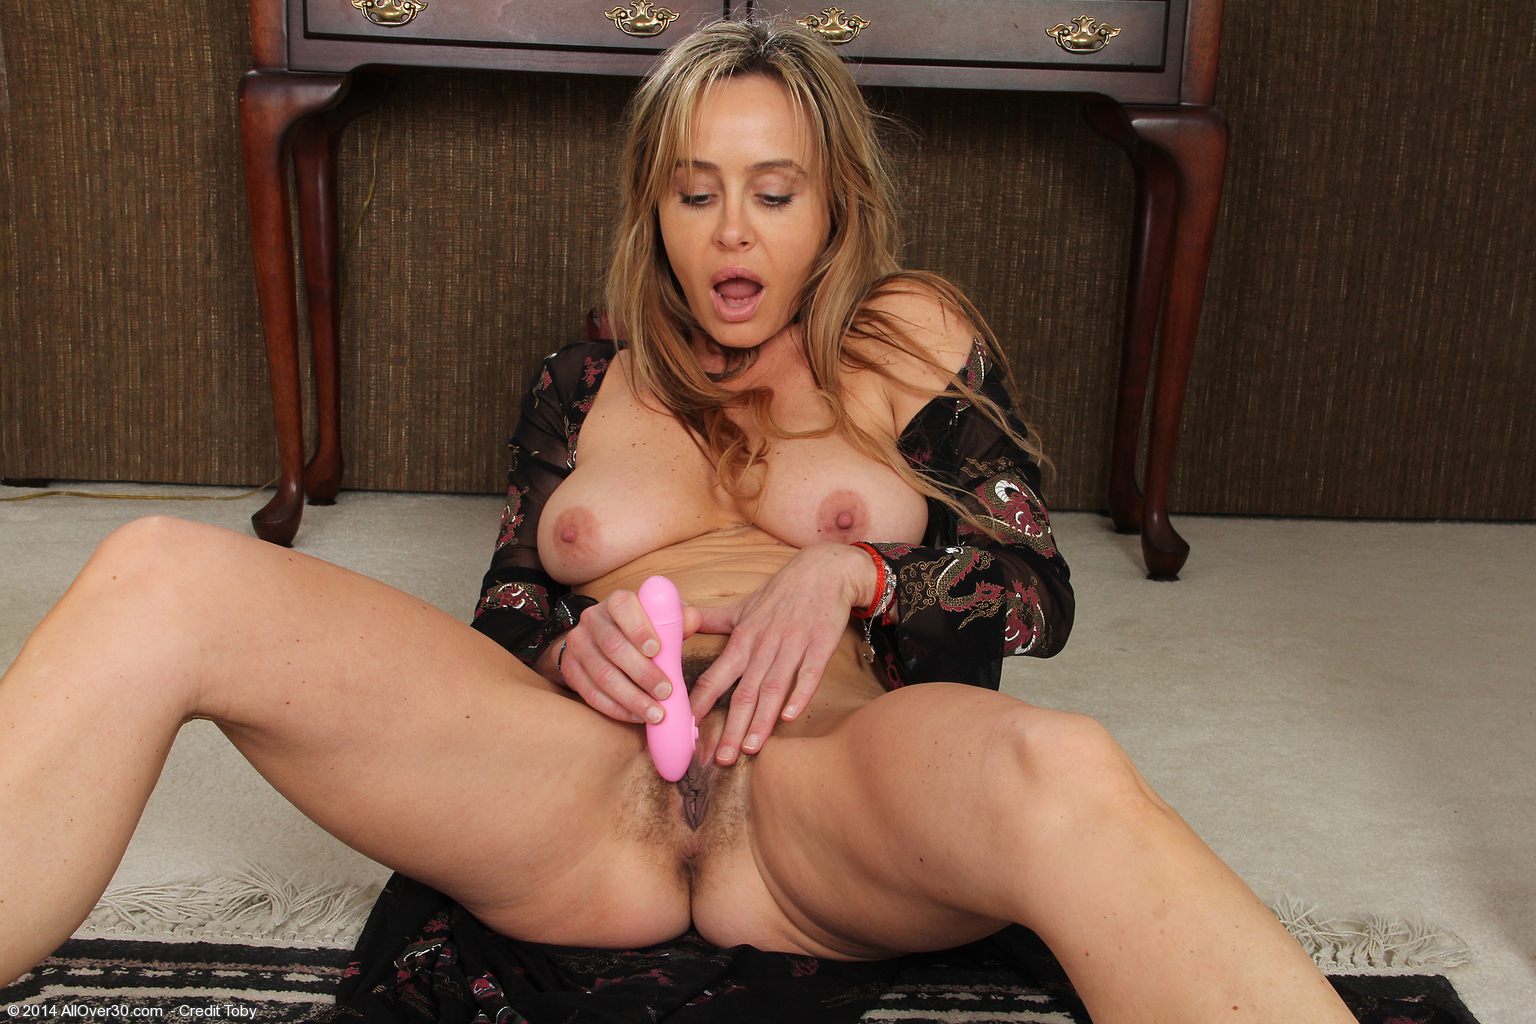 all Kelli over nude mccarty